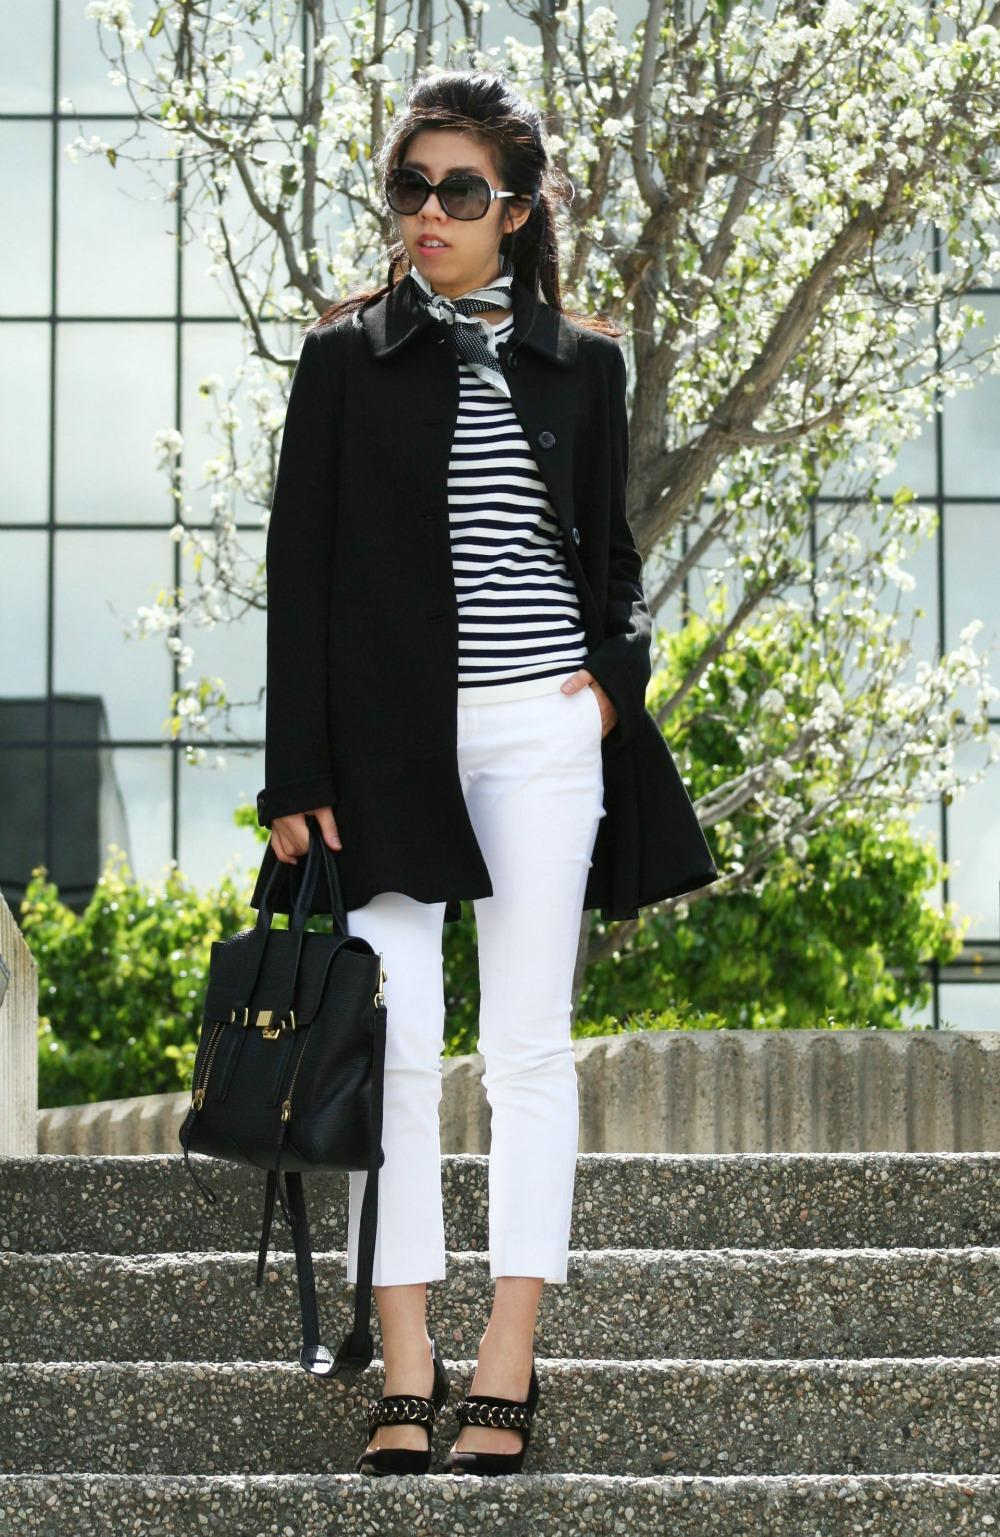 What I Wore Today - Coat Over Shoulders - Cigarette Pants with Blue and White Striped Top _ Adrienne Nguyen - Invictus